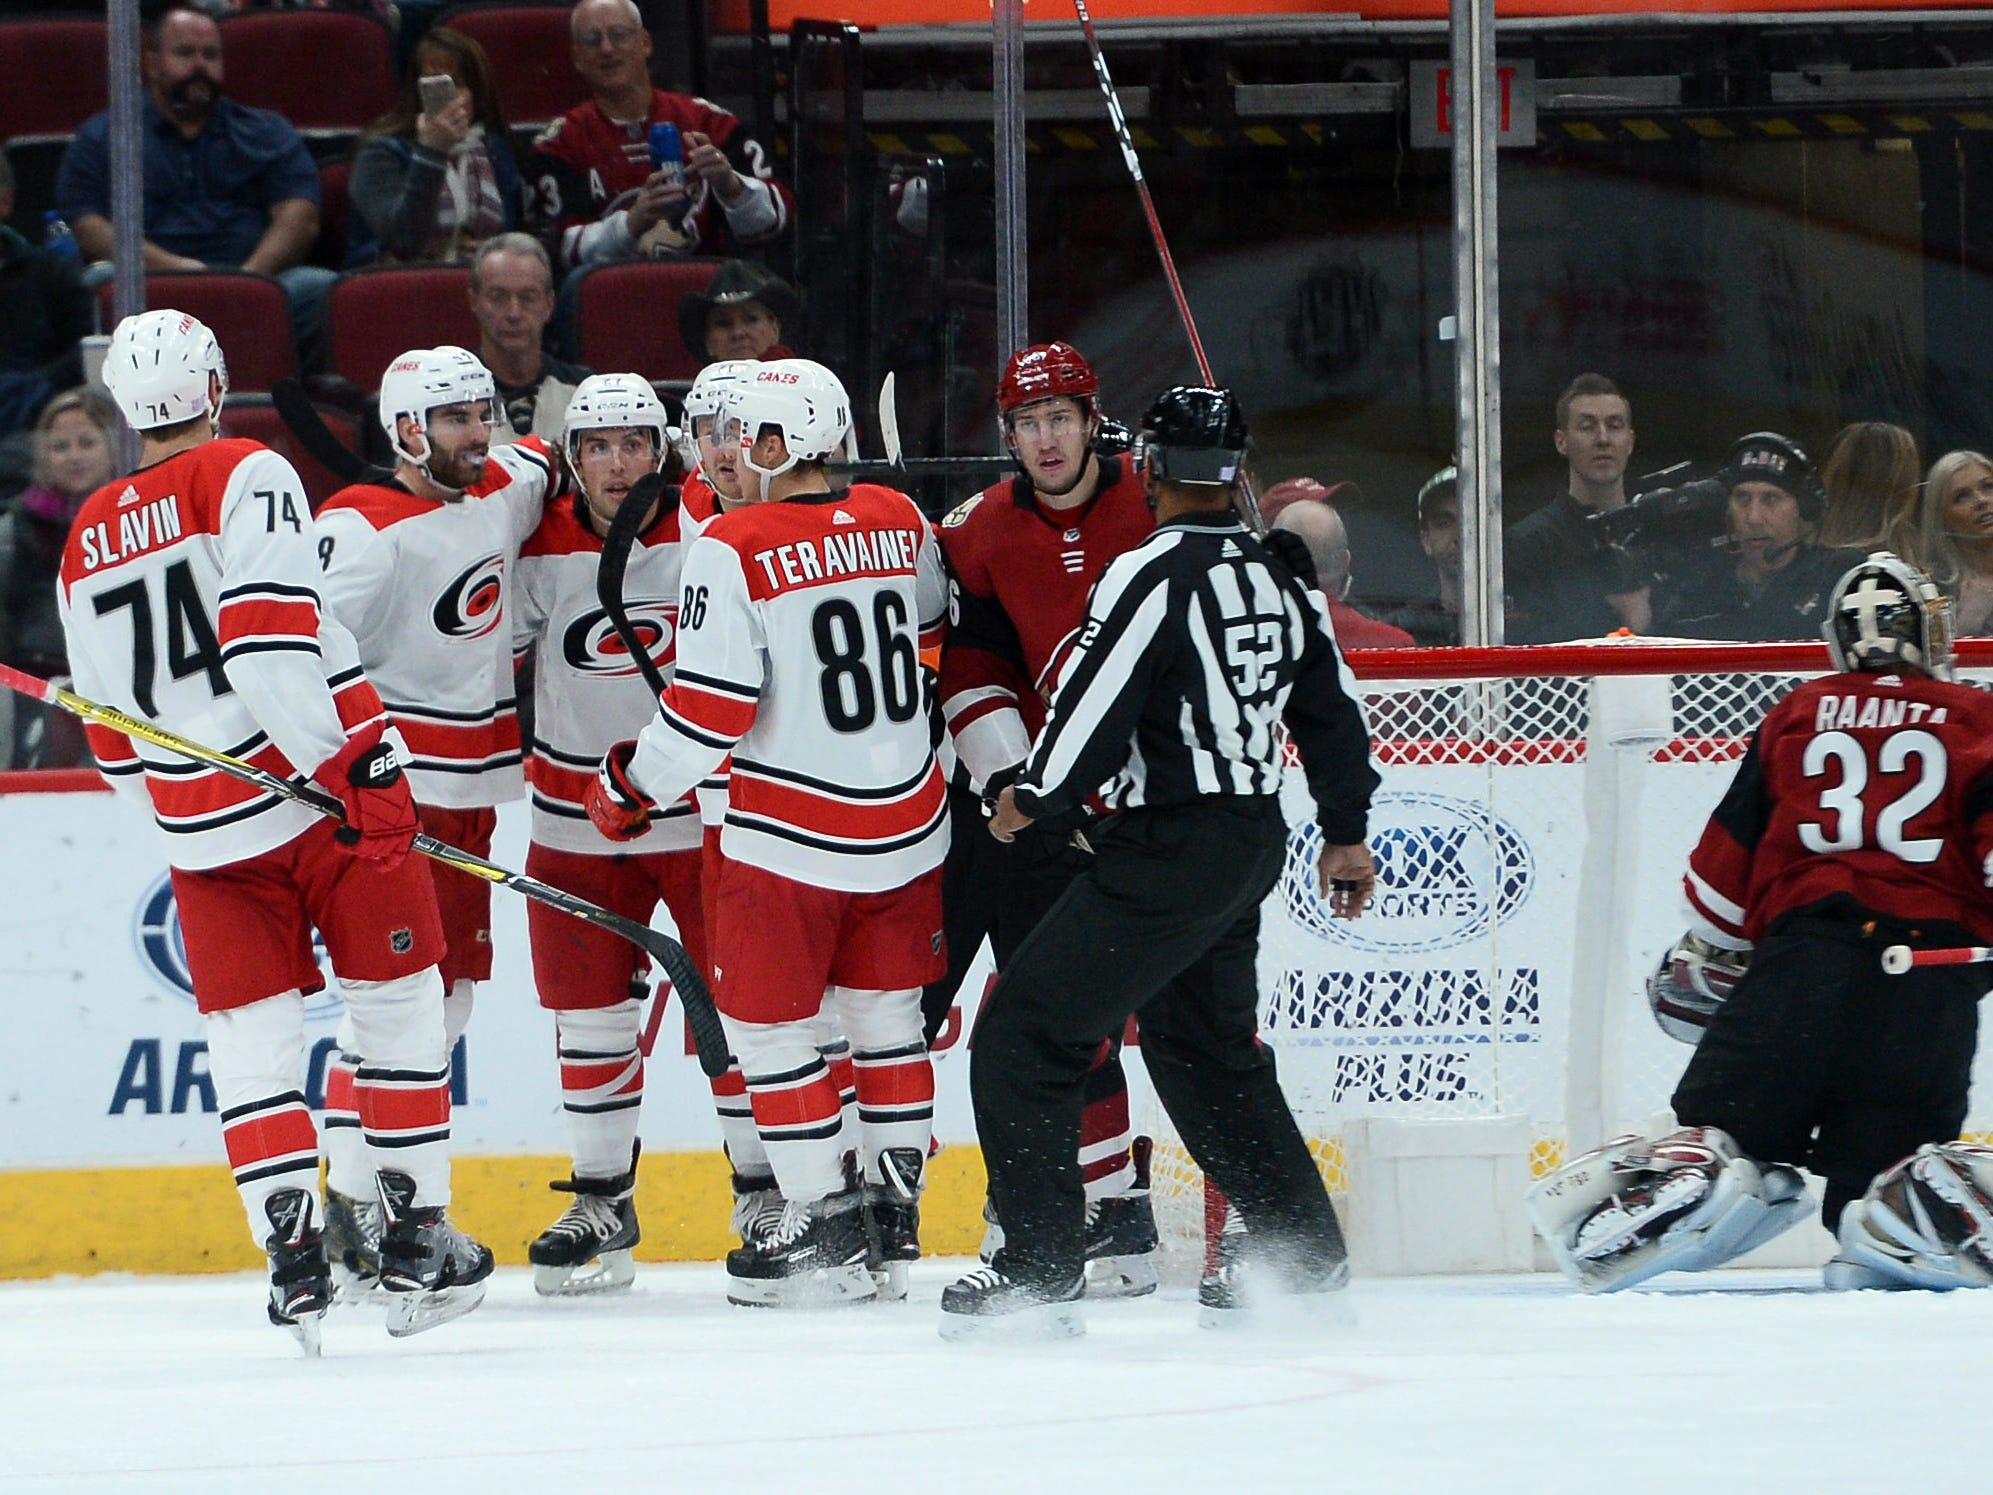 Nov 2, 2018: Carolina Hurricanes left wing Jordan Martinook (48) celebrates after scoring a goal against the Arizona Coyotes during the second period at Gila River Arena.